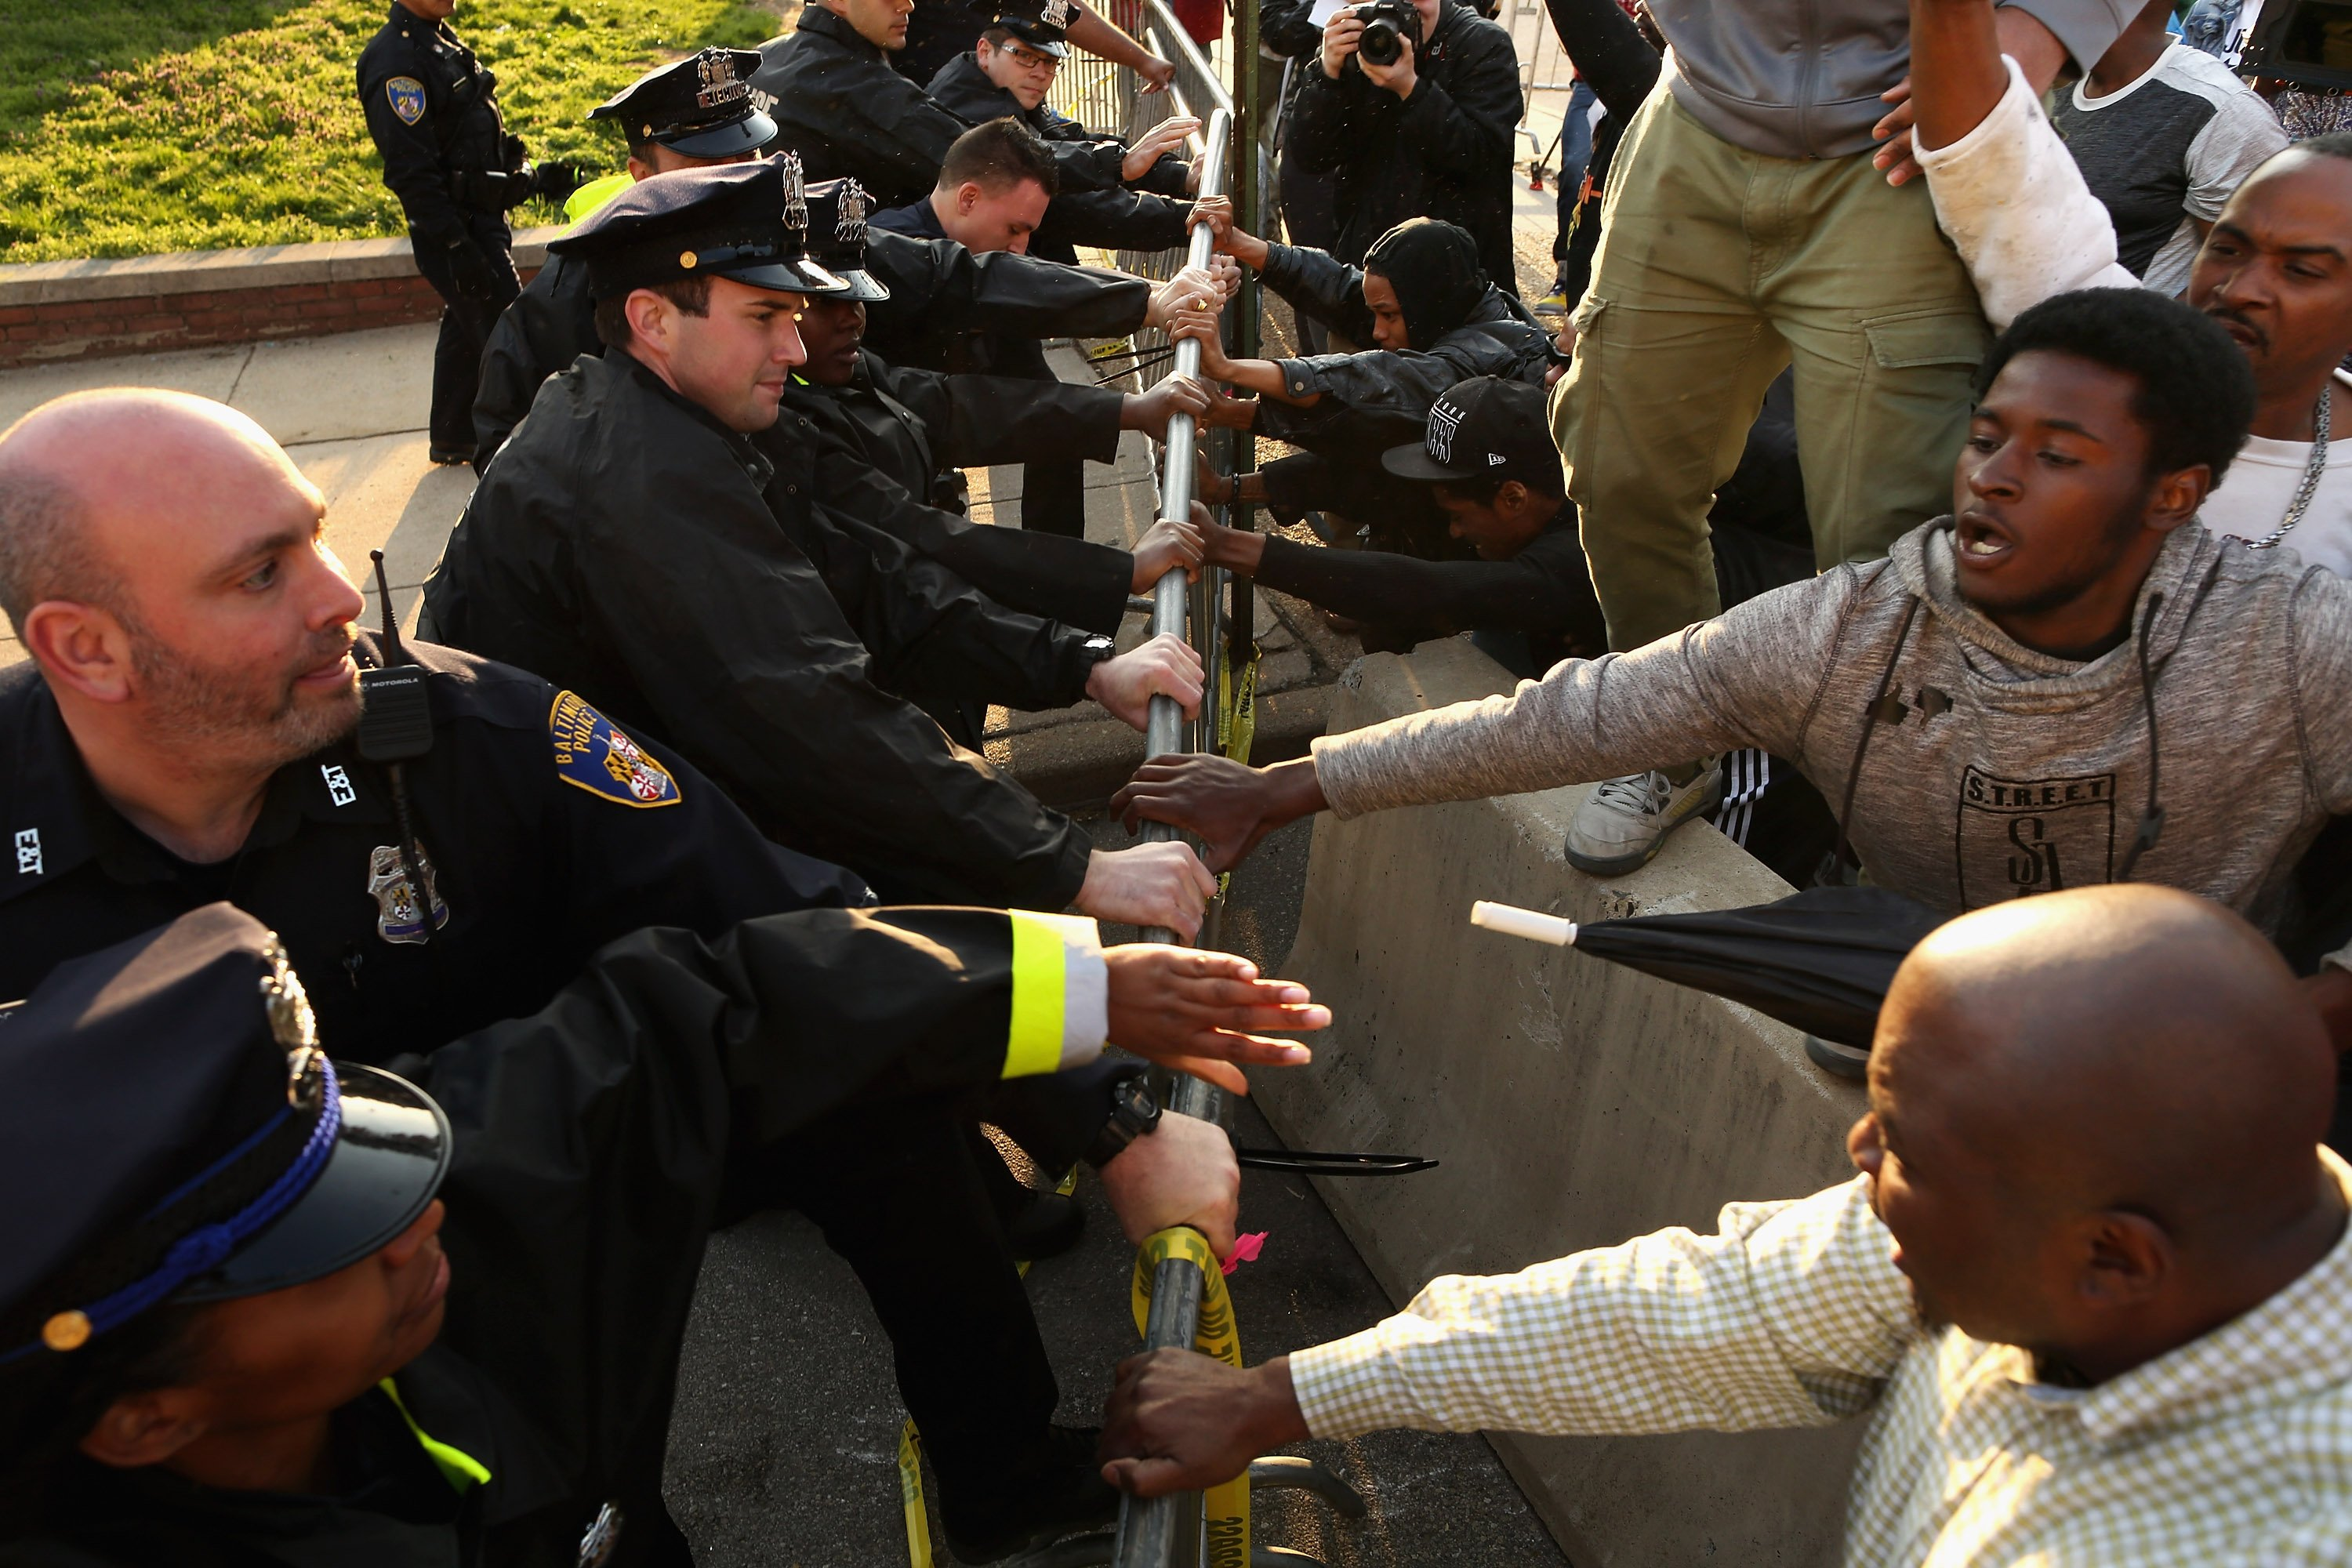 Demonstrators and police officers wrestle over a metal barricade outside the Baltimore Police Western District station in Baltimore on April 22, 2015.